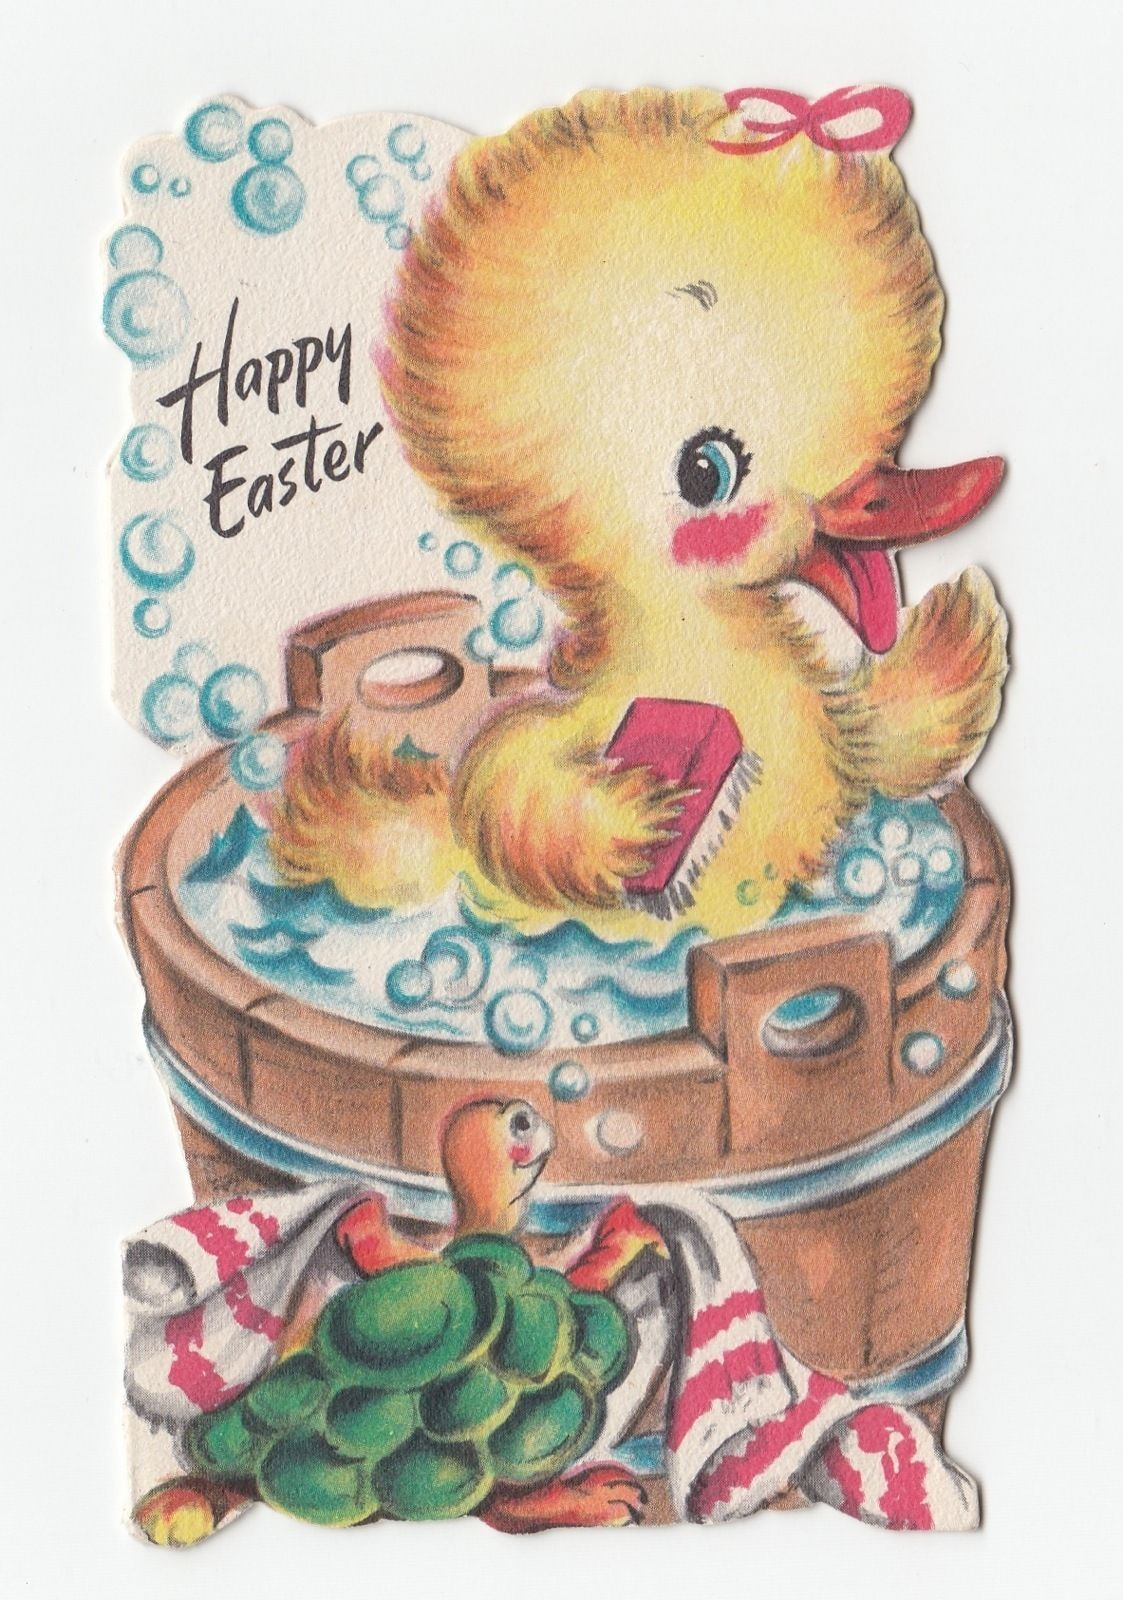 Vintage greeting card easter die cut 1940s duck turtle bath tub vintage greeting card easter die cut 1940s duck turtle bath tub hallmark a516 ebay kristyandbryce Image collections